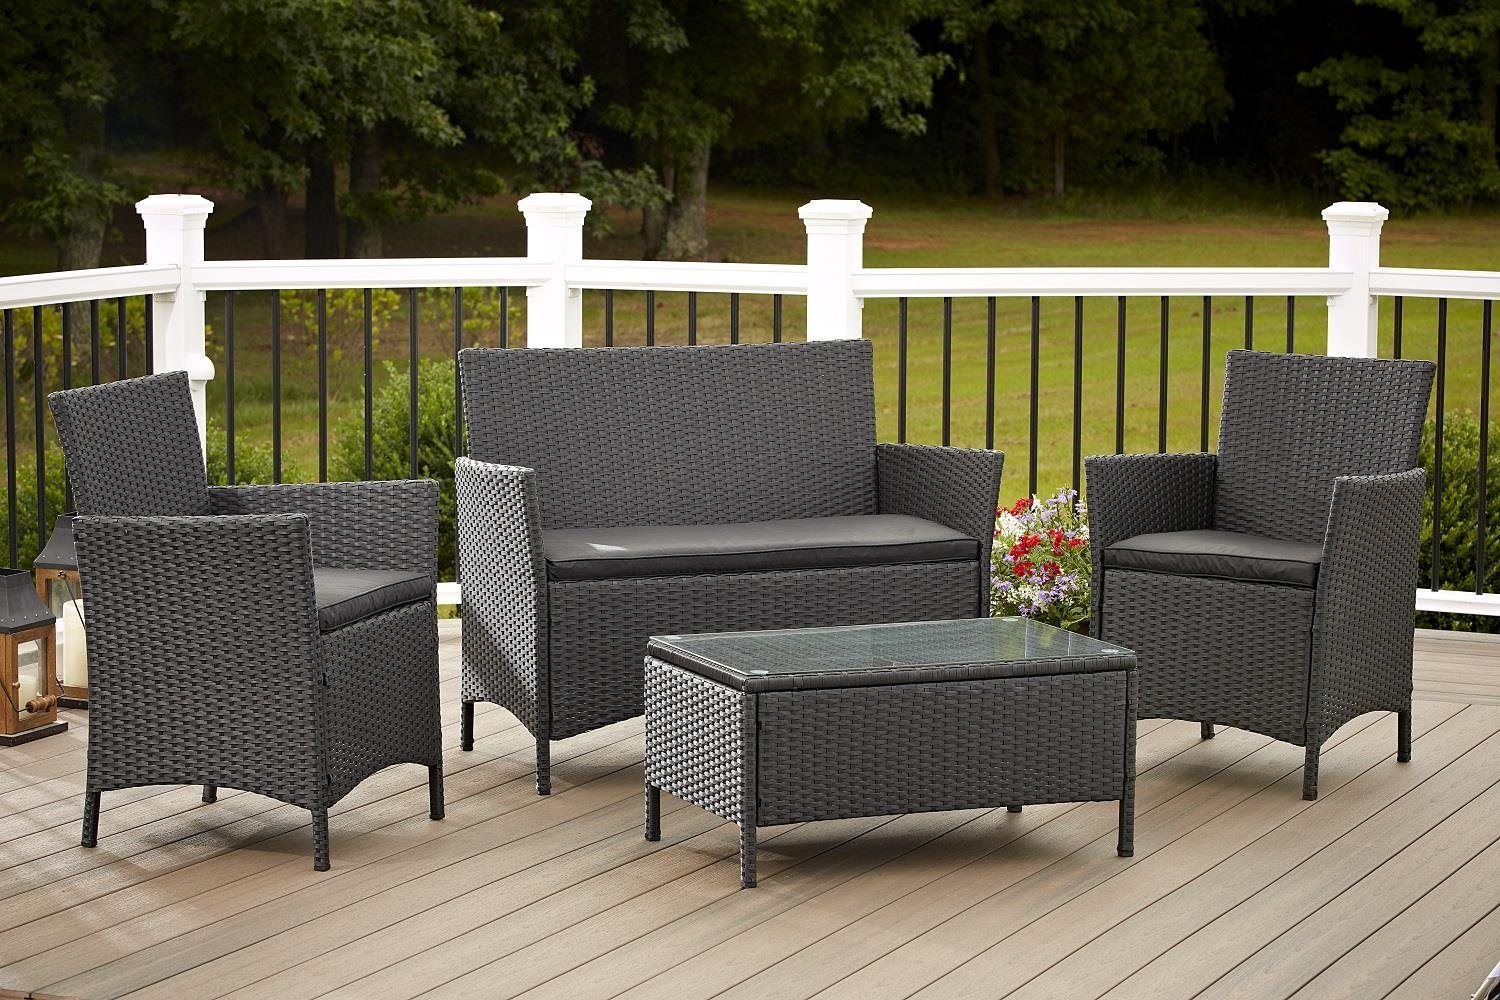 Amazon.com: Cosco Outdoor Conversation Set, 4 Piece, Black Wicker: Garden &  Outdoor - Amazon.com: Cosco Outdoor Conversation Set, 4 Piece, Black Wicker